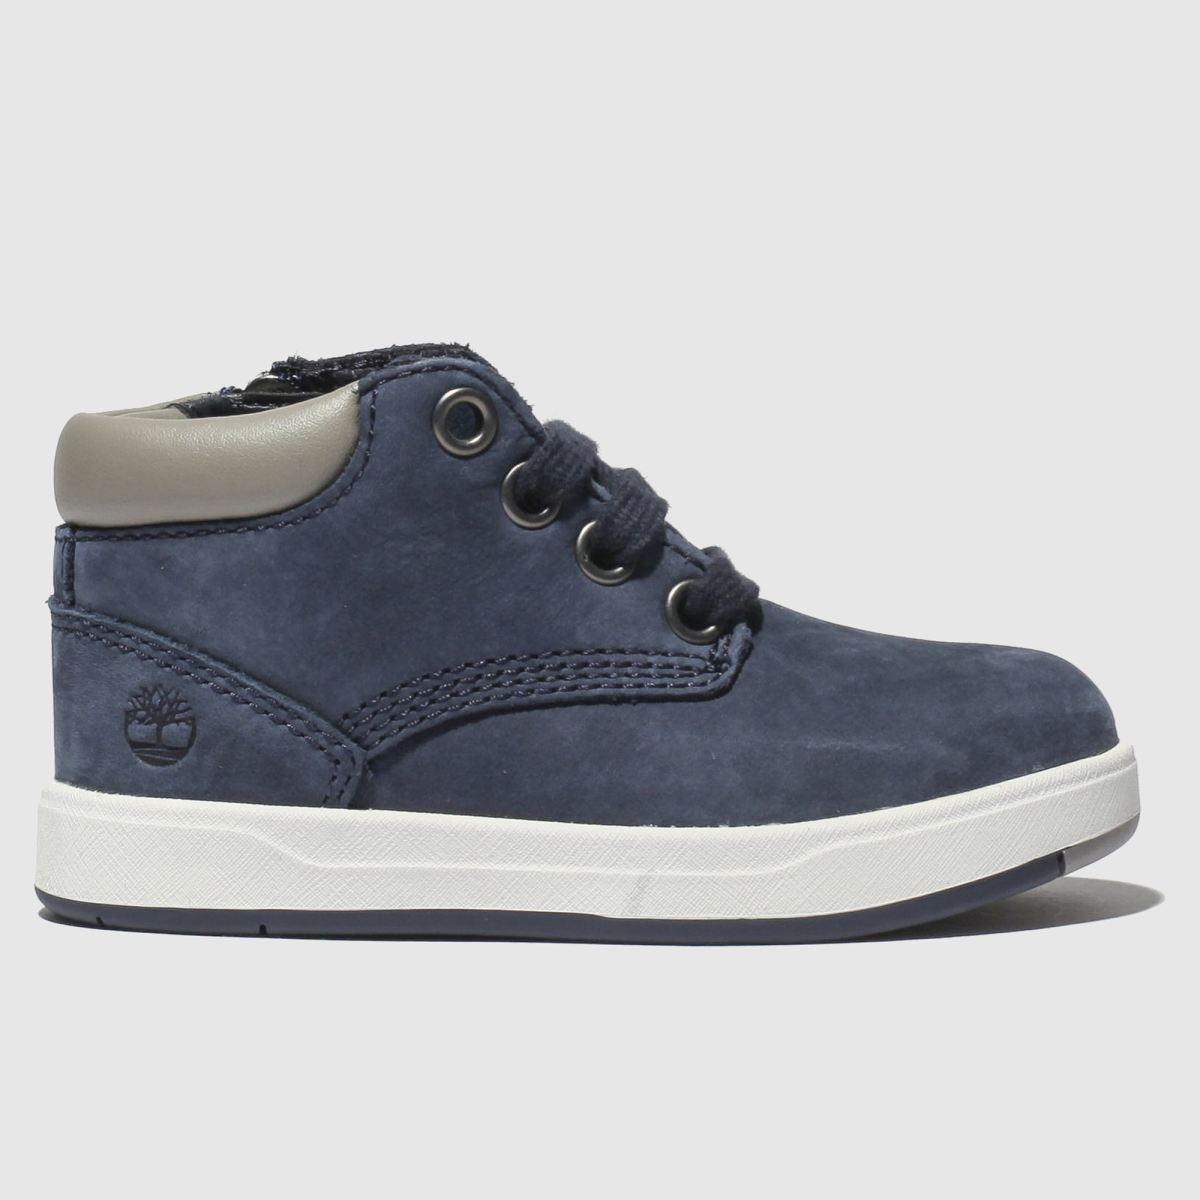 Timberland Navy Davis Square Boots Toddler